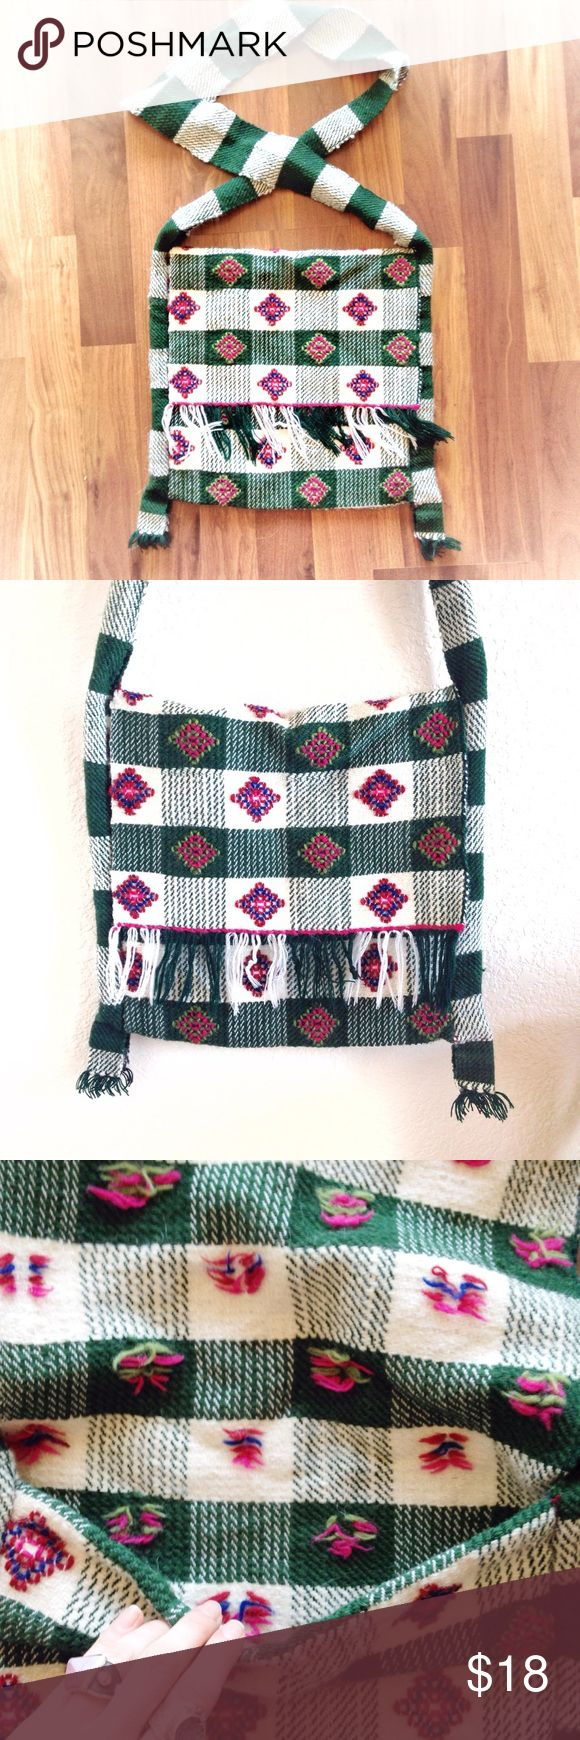 ✨Vintage✨Peruvian Handwoven Tote Bag Over Shoulder Beautiful, bohemian style woven bag. Per the style and fabric, the craftsmanship is either from Peru, Bolivia or Guatemala. I love this bag with jeans & a white tee, but it's a great item to add a little flare to any outfit! In like new condition... I doubt it's ever been used ❤️ Bundle & save! Make me an offer I can't refuse... 😜 Happy Poshing, lovelies! Vintage Retro Urban Outfitters Anthropologie Anna Sui Hipster Boho Vintage Bags…